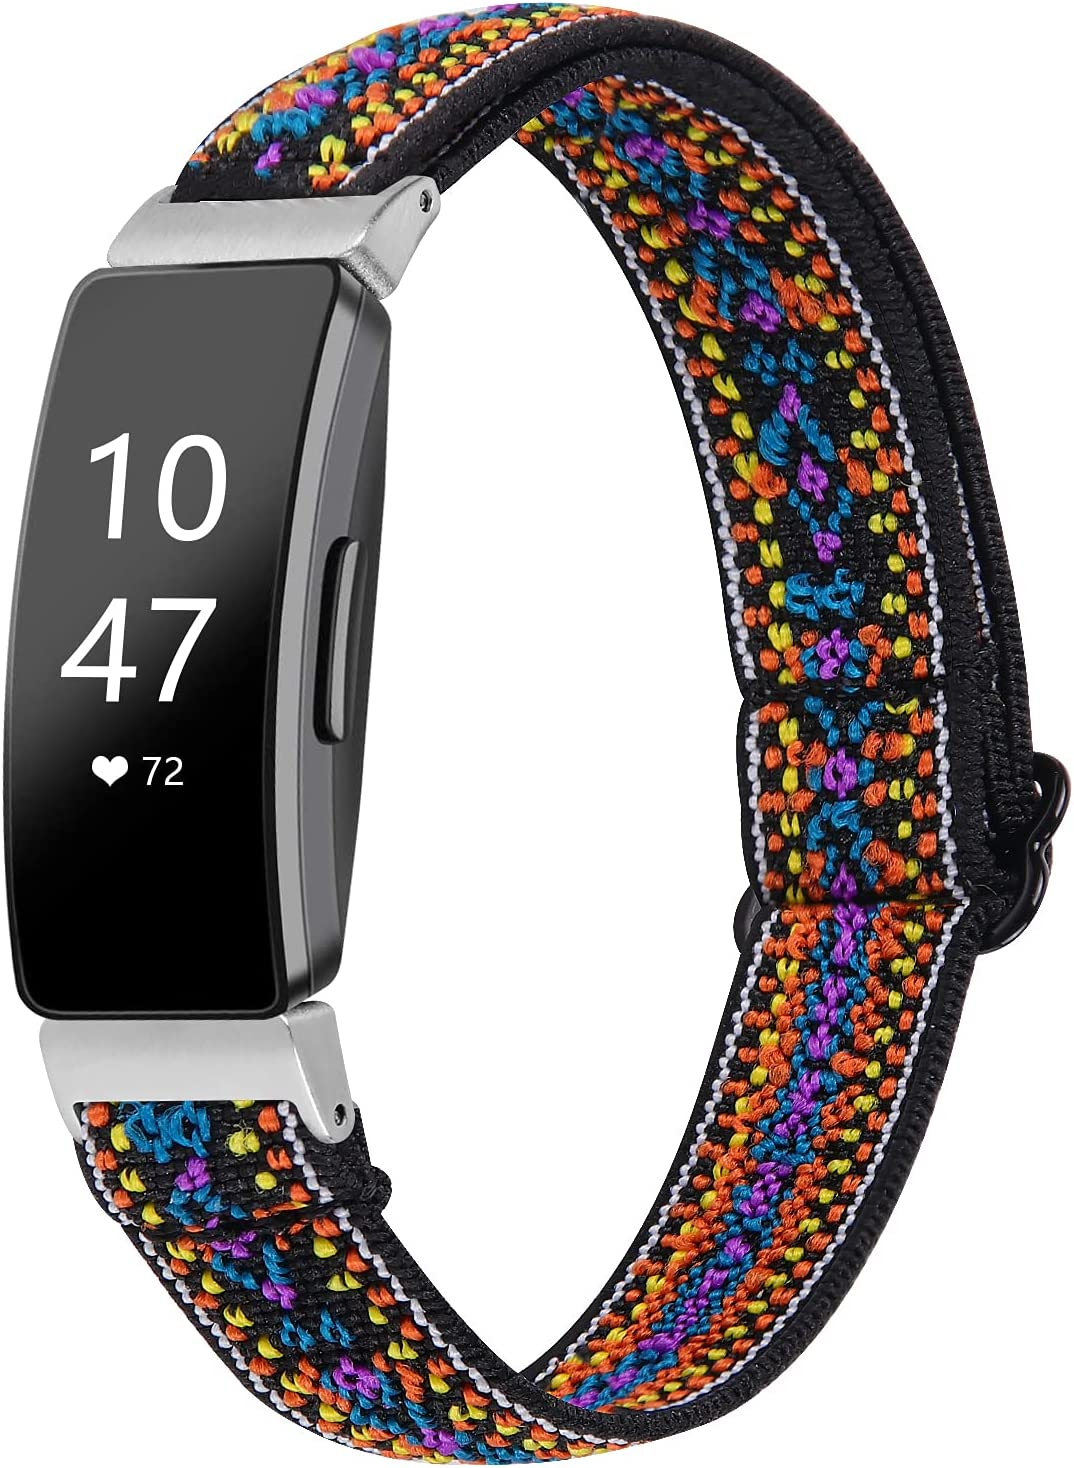 HAYUL Elastic Bands Compatible with Fitbit Inspire 2/ Inspire/Inspire HR for Women Men, Stretchy Fabric Soft Nylon Loop Band for Inspire Fitness Tracker, Skin-Friendly Replacement Wristband Accessory